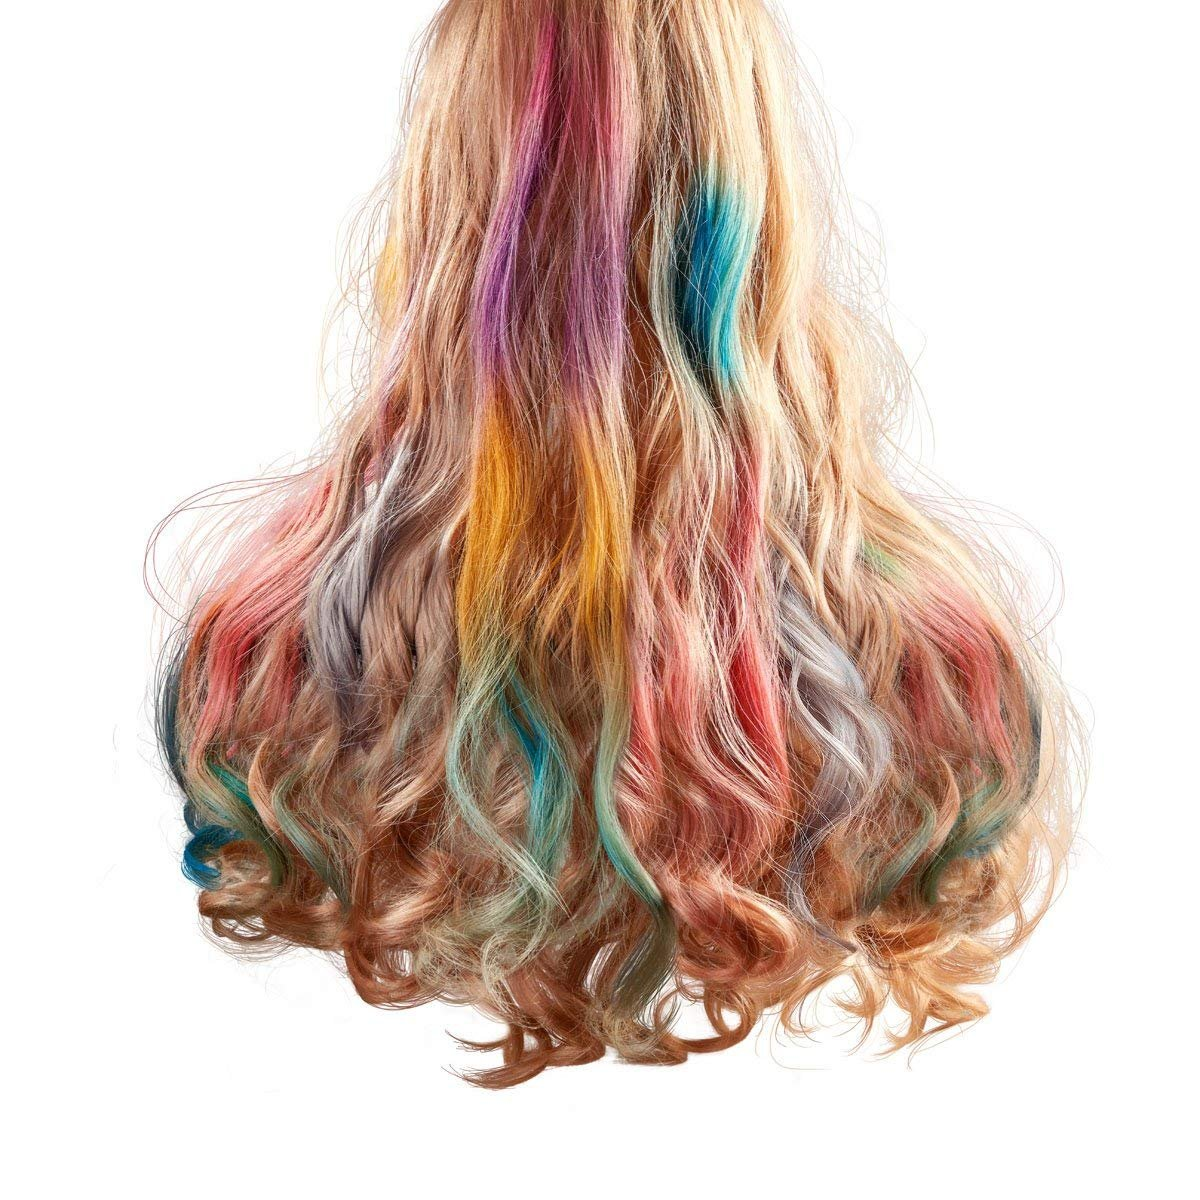 Maydear Temporary Hair Chalk Comb-Non Toxic Washable Hair Color Comb for Hair Dye-Safe for Kids for Party Cosplay DIY (6 Colors) by Maydear (Image #6)